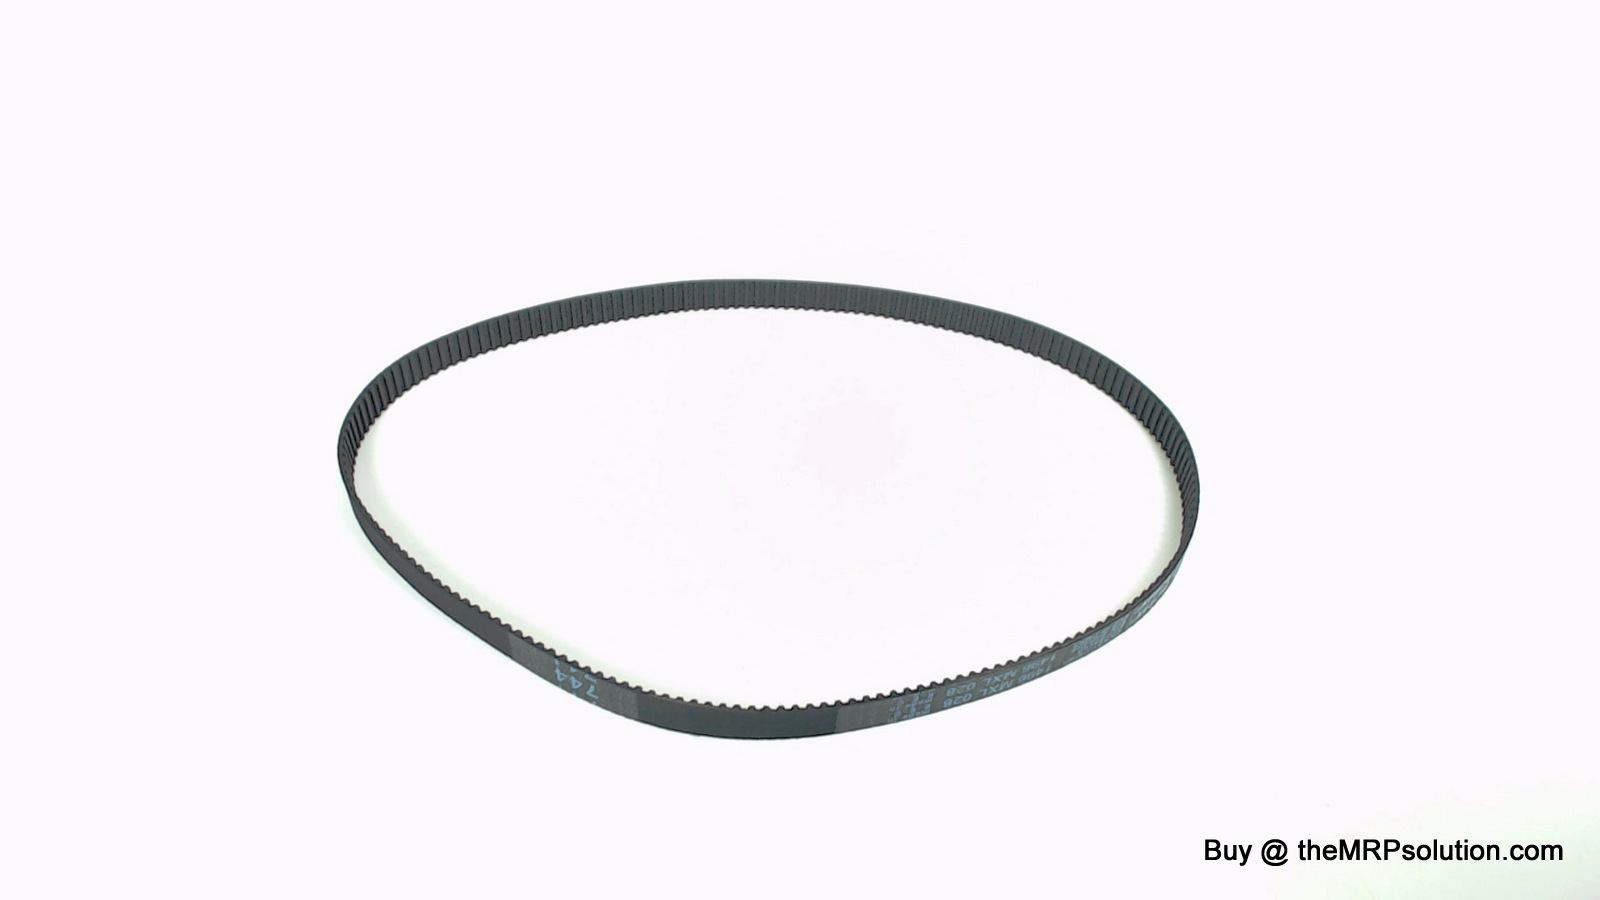 IBM 08H7307 BELT, PAPER FEED, 4247 Refurbished